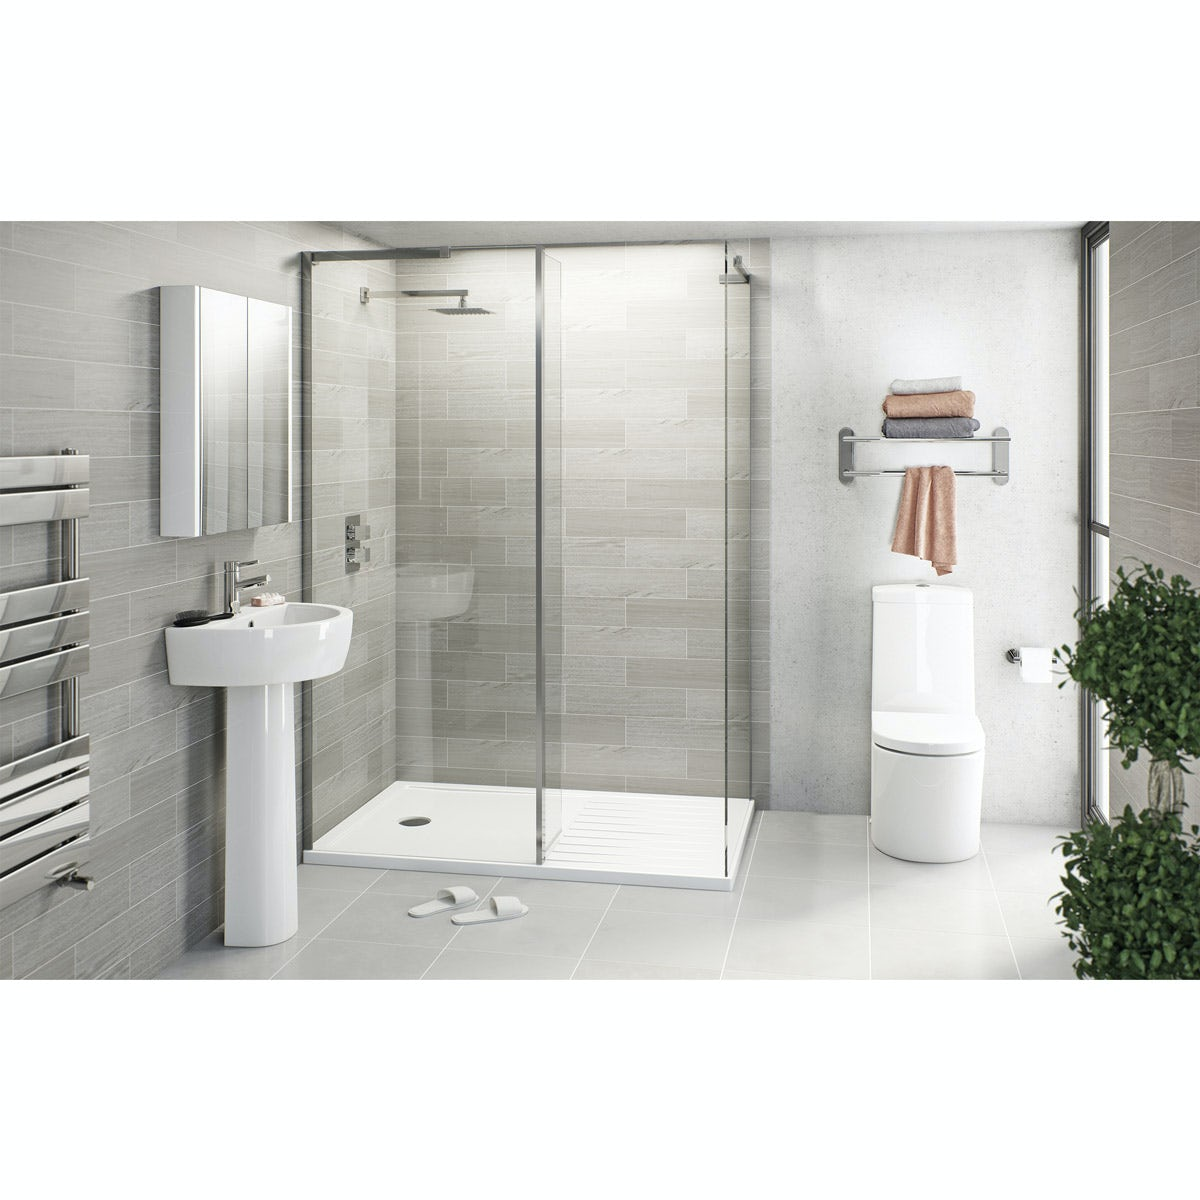 Mode Tate ensuite suite with enclosure and tray 1400 x 900